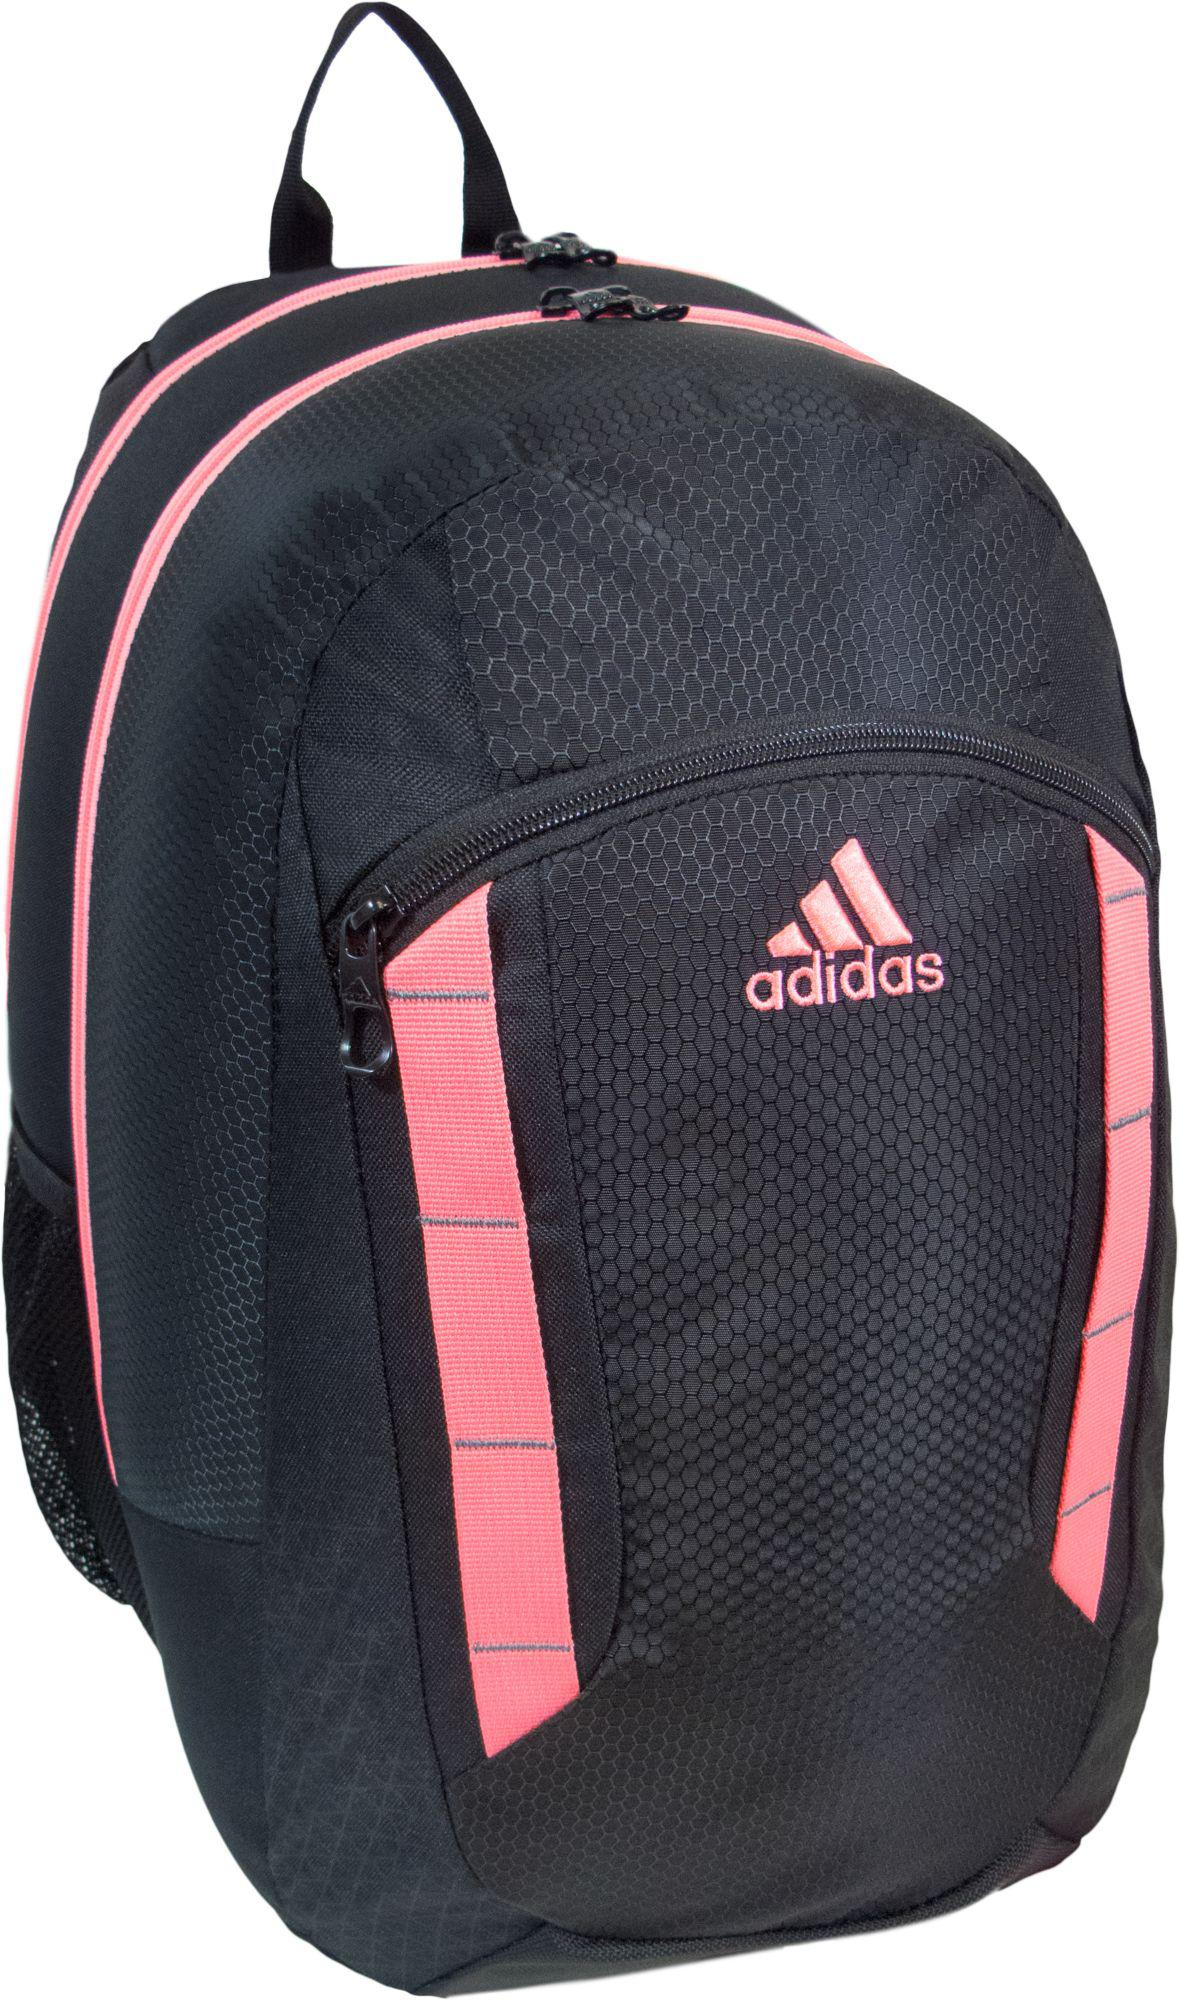 7530bf4903c Adidas - Multicolor Excel Iii Backpack - Lyst